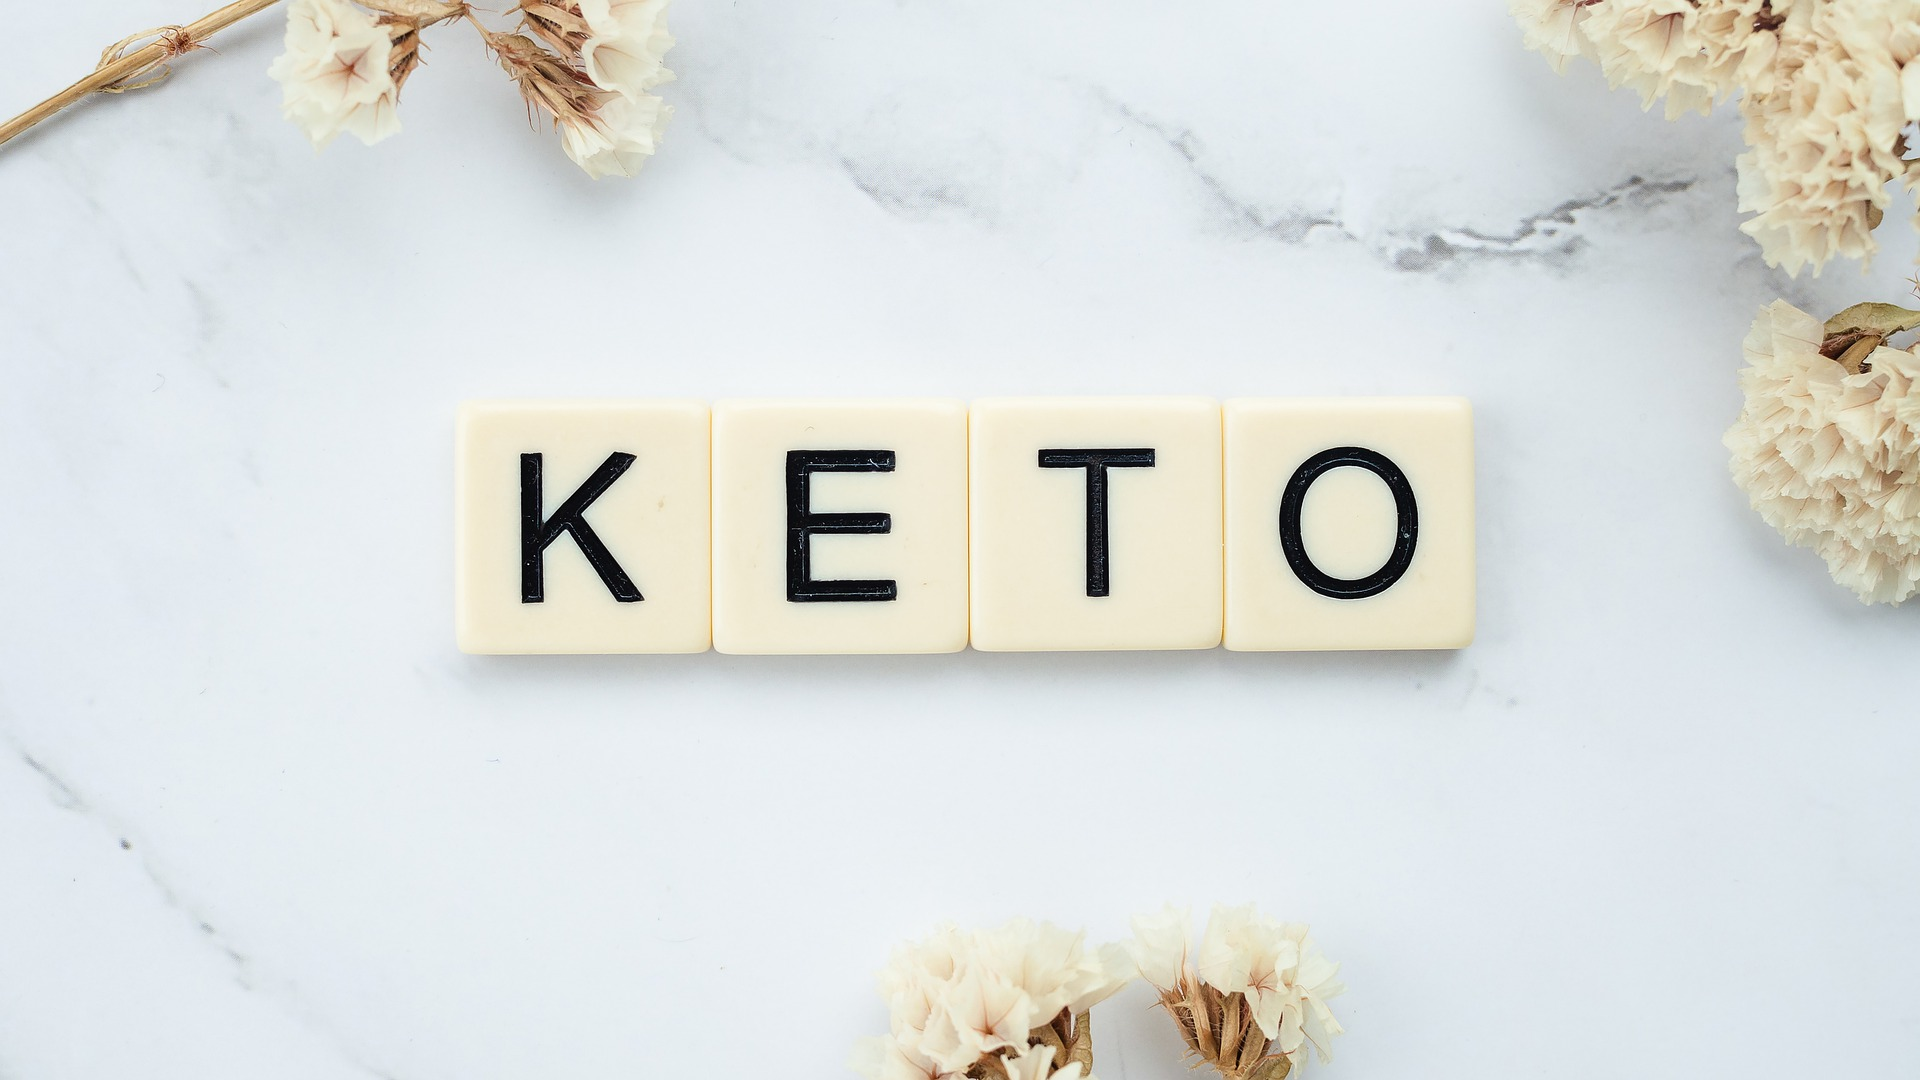 HOW TO LOSE WEIGHT WITH A KETOGENIC DIET-WHAT YOU ARE NOT TOLD